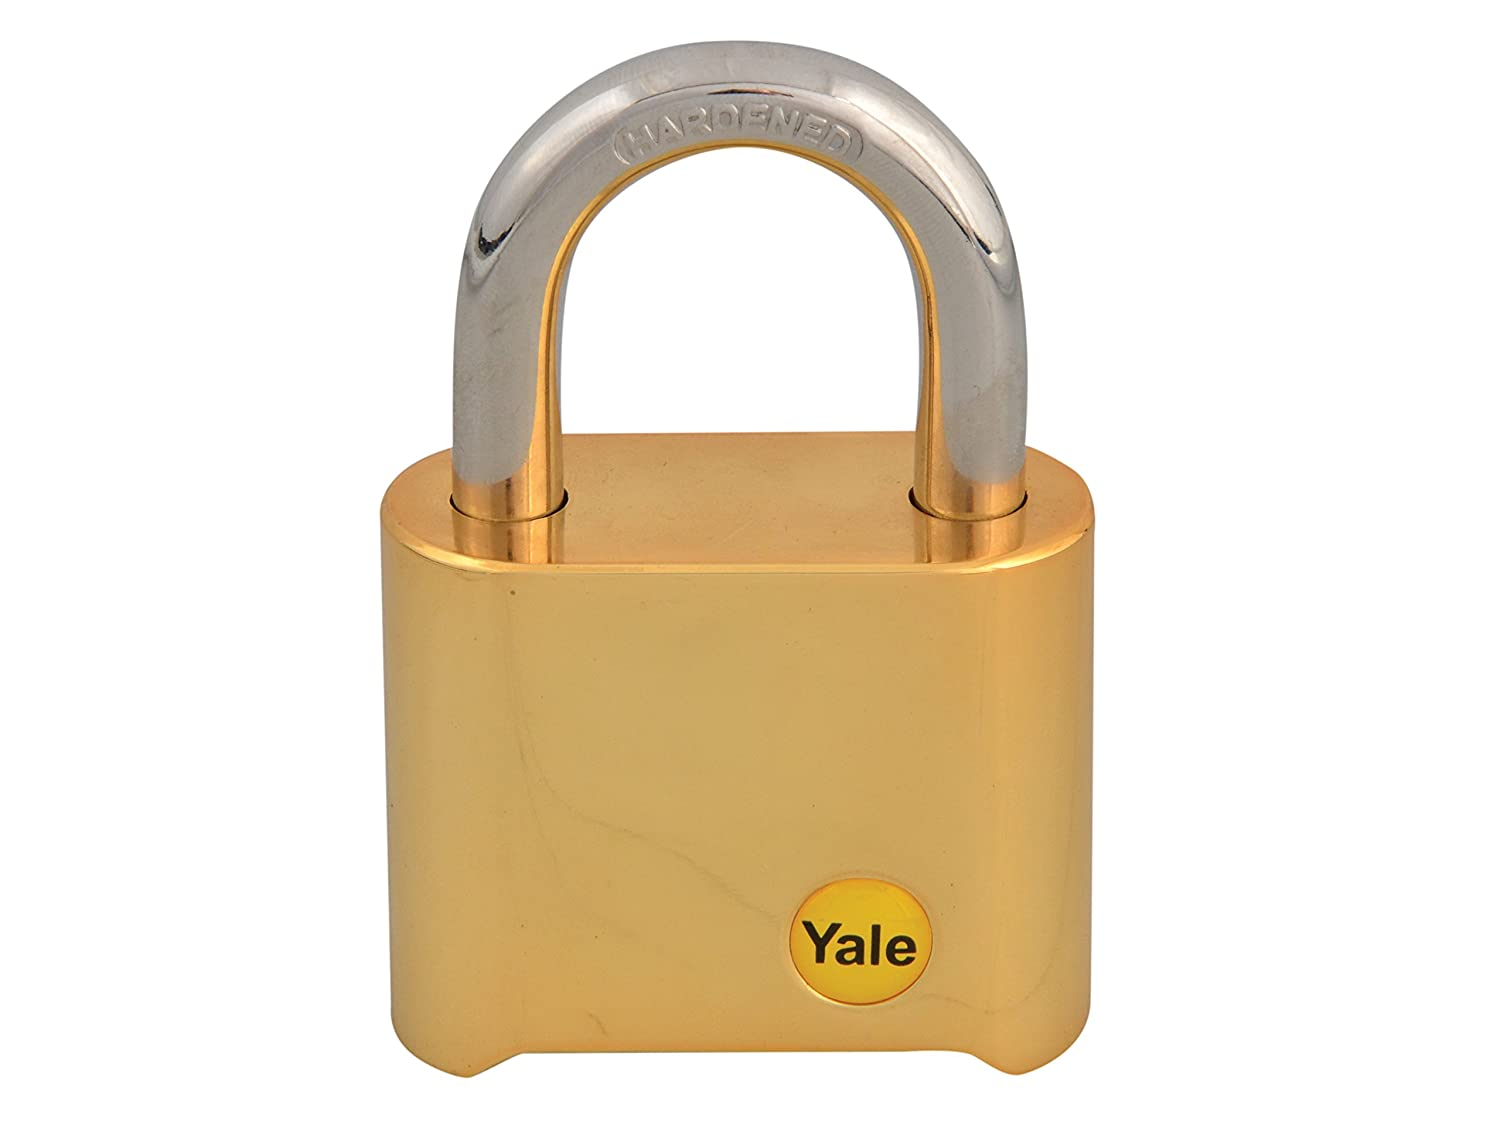 Yale YALY12650 Y126/50/127/1 Brass Combination Padlock 50 mm, Gold Toolbank